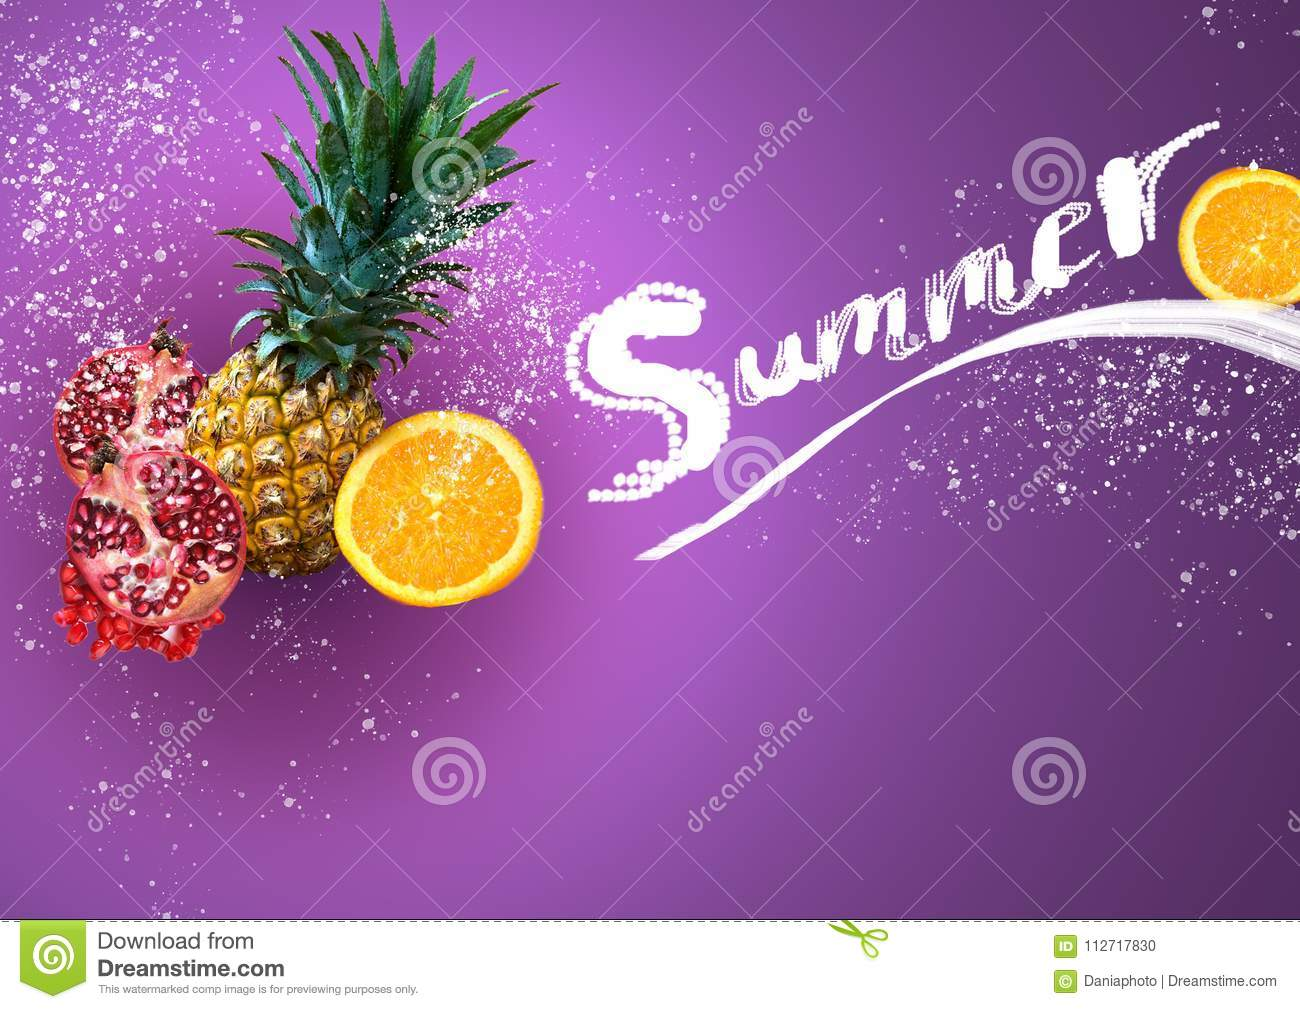 Tropical Fruits on Colorful Background in Summer Concept